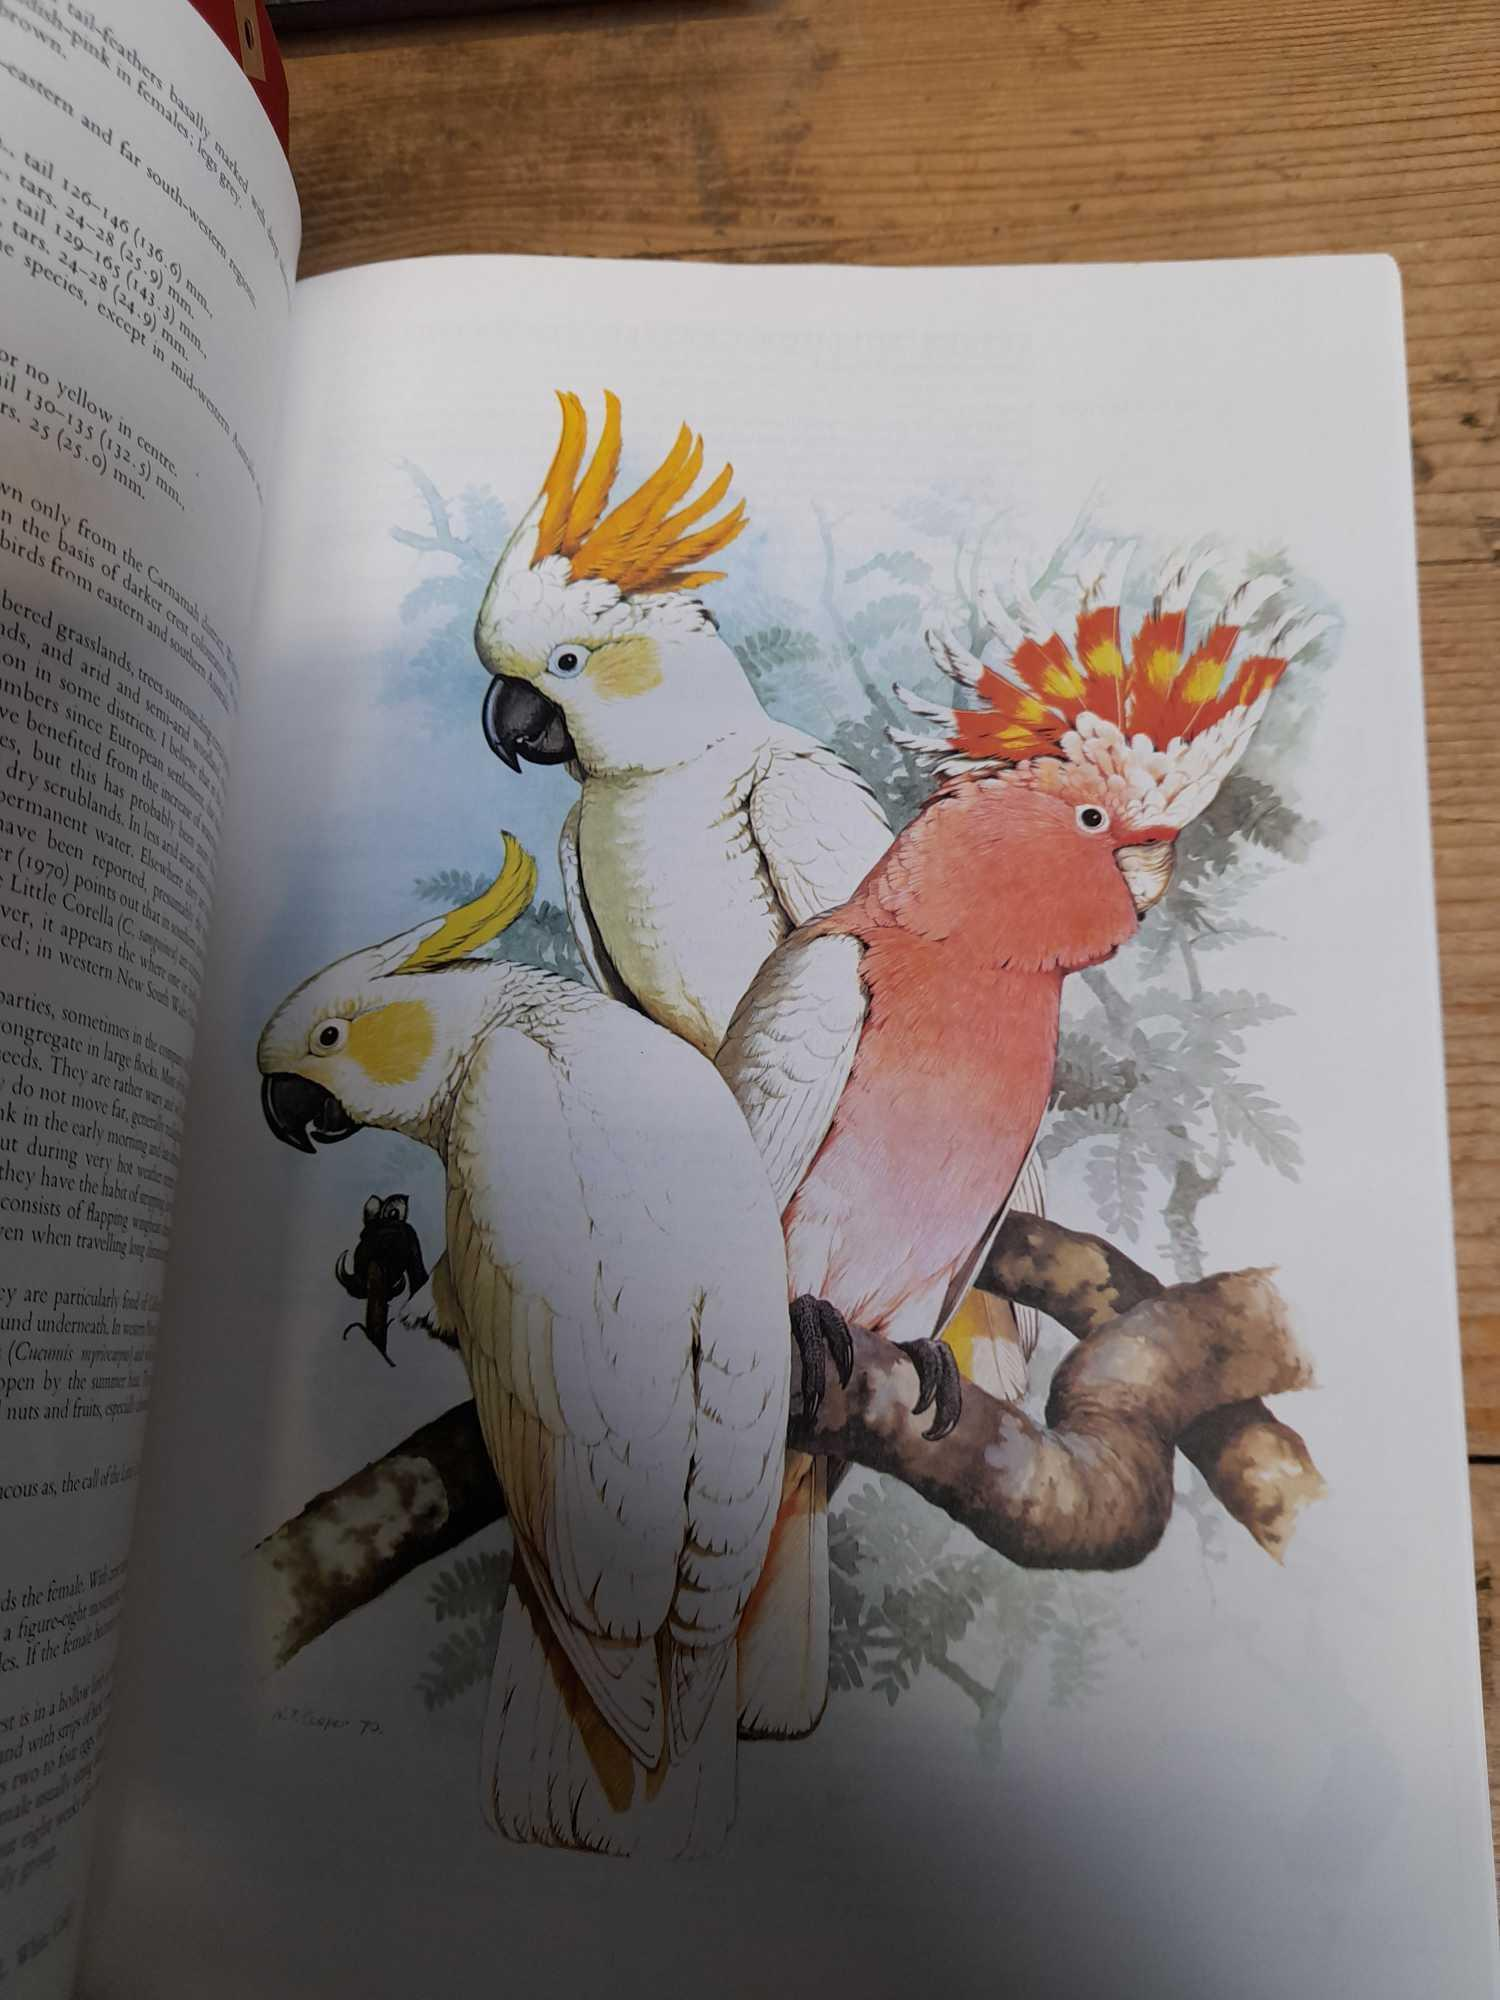 3 PARROT BOOKS - Image 13 of 20